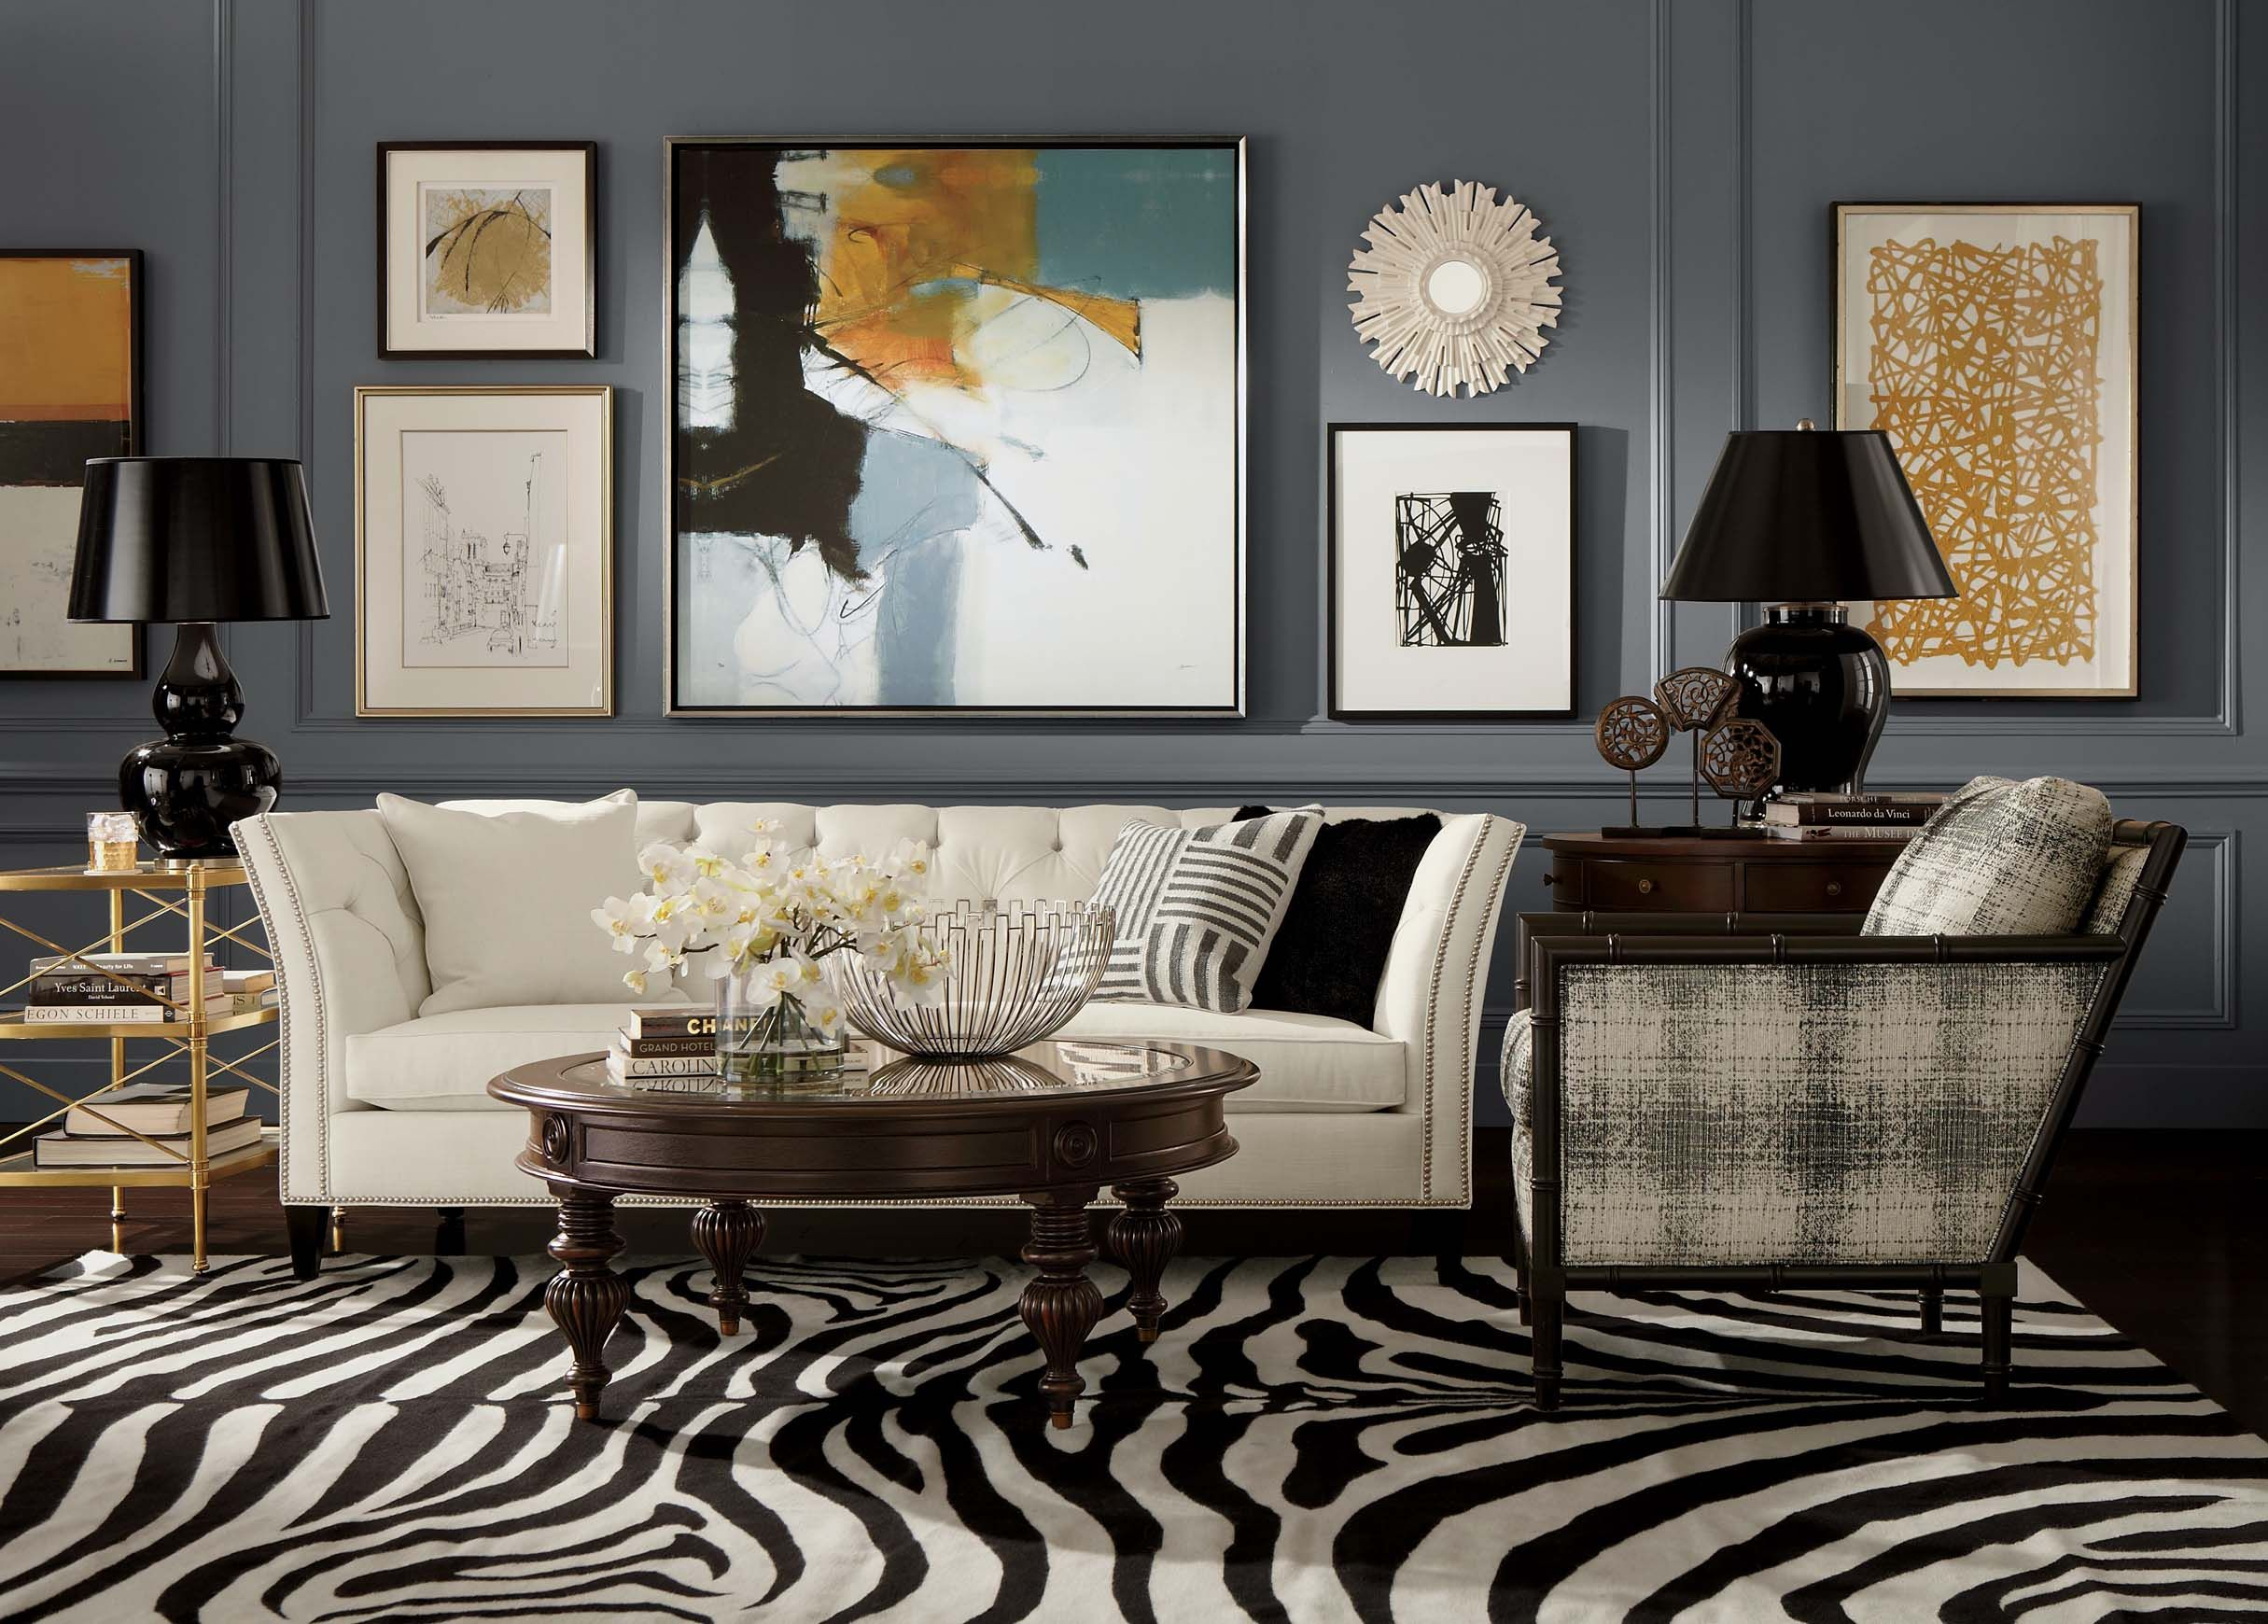 Living Room Zebra Rug this ethan allen zebra rug in expresso/ivory gives this room some